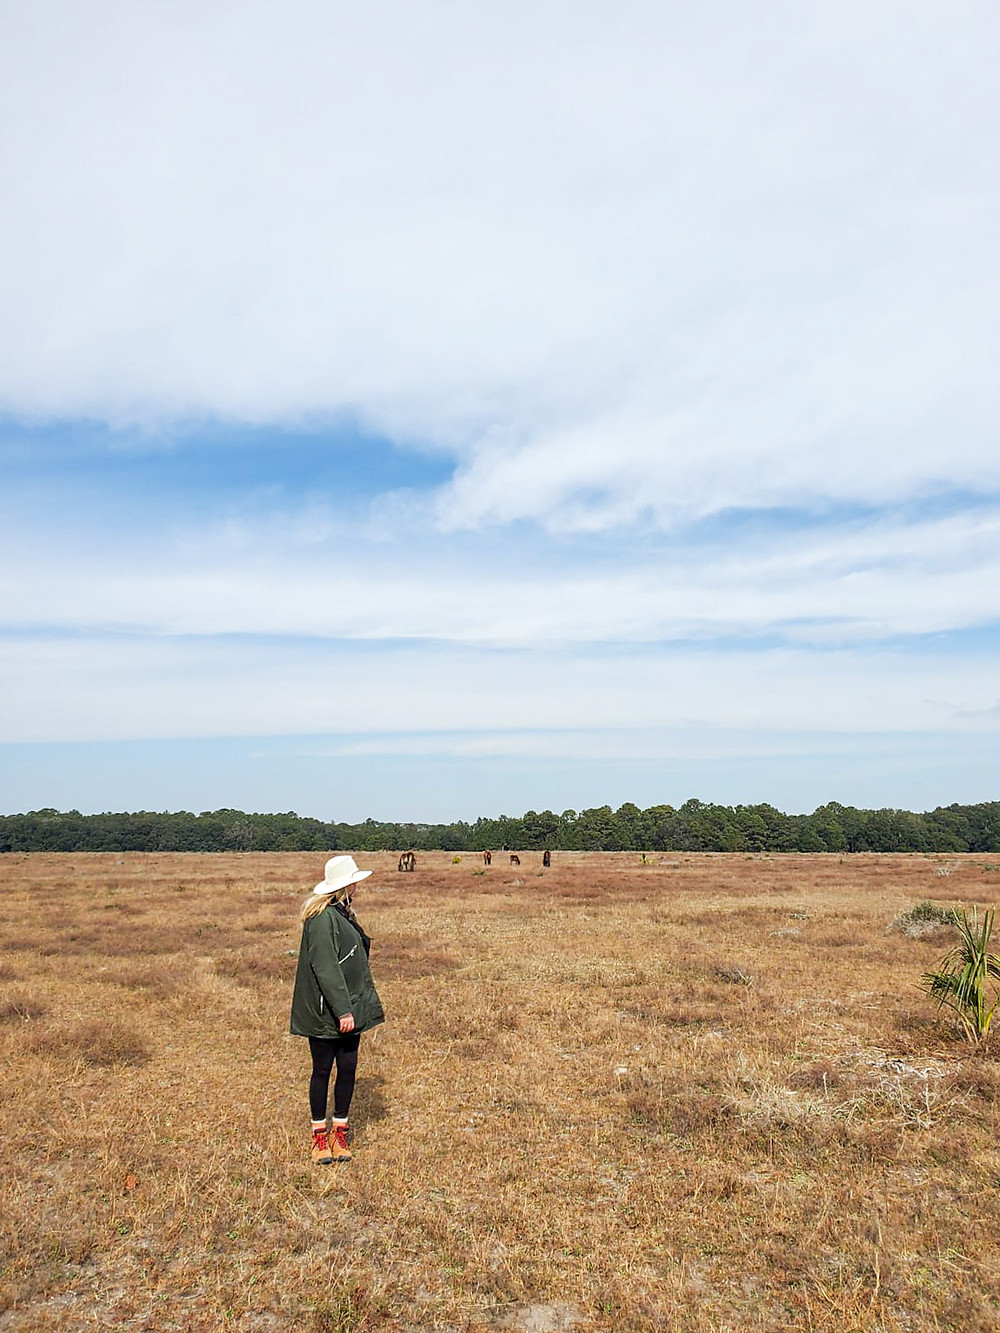 lydia mansel stands in a field at cumberland island national park under a blue and cloud covered sky, wearing a white hat, green jacket, black leggings. and rain boots